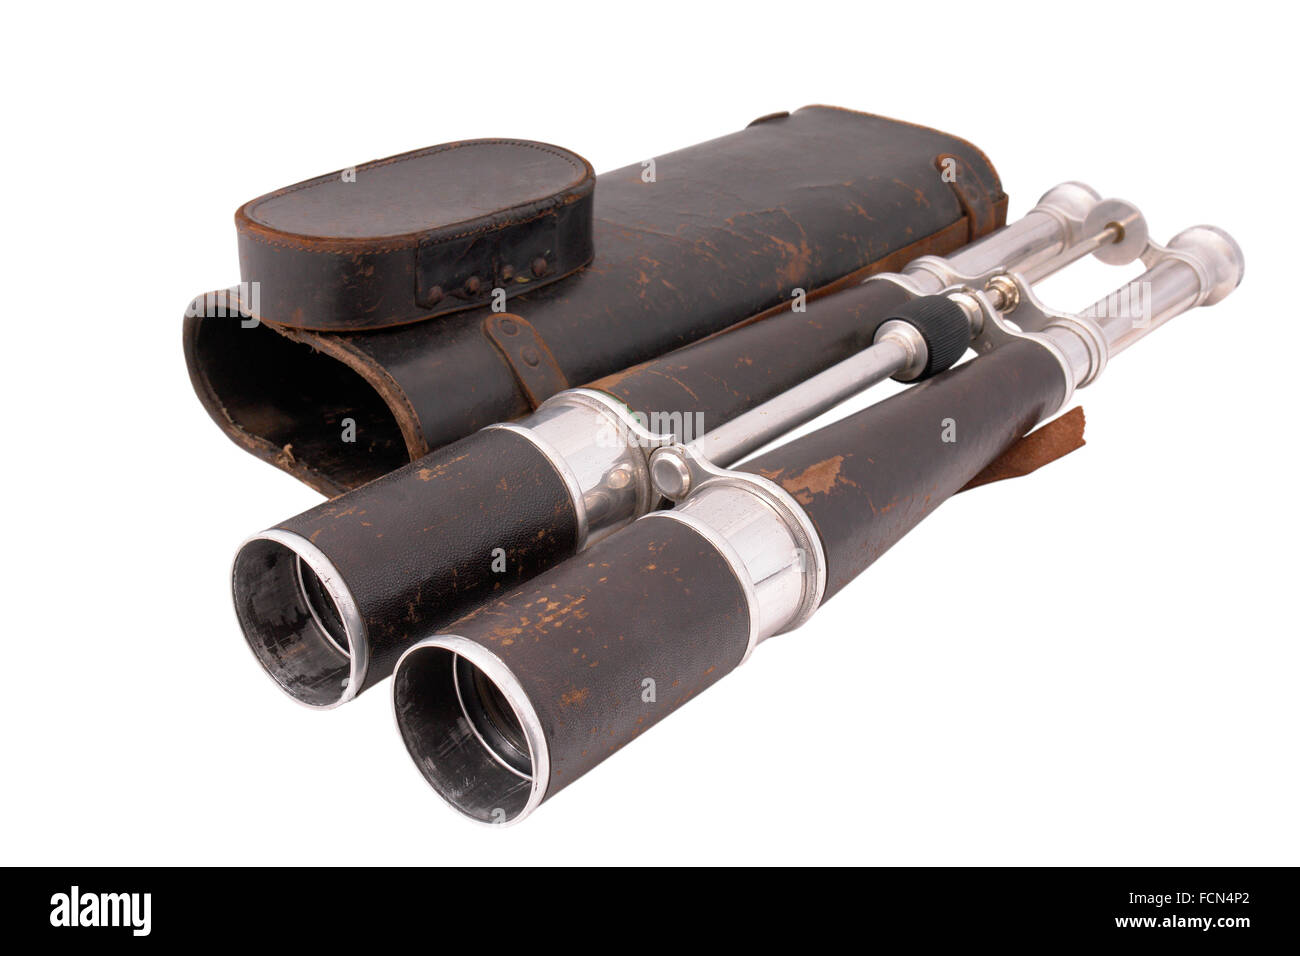 19 century binocular of dirigible (Zeppelin) captain with leather case. Made in France. Paris. - Stock Image